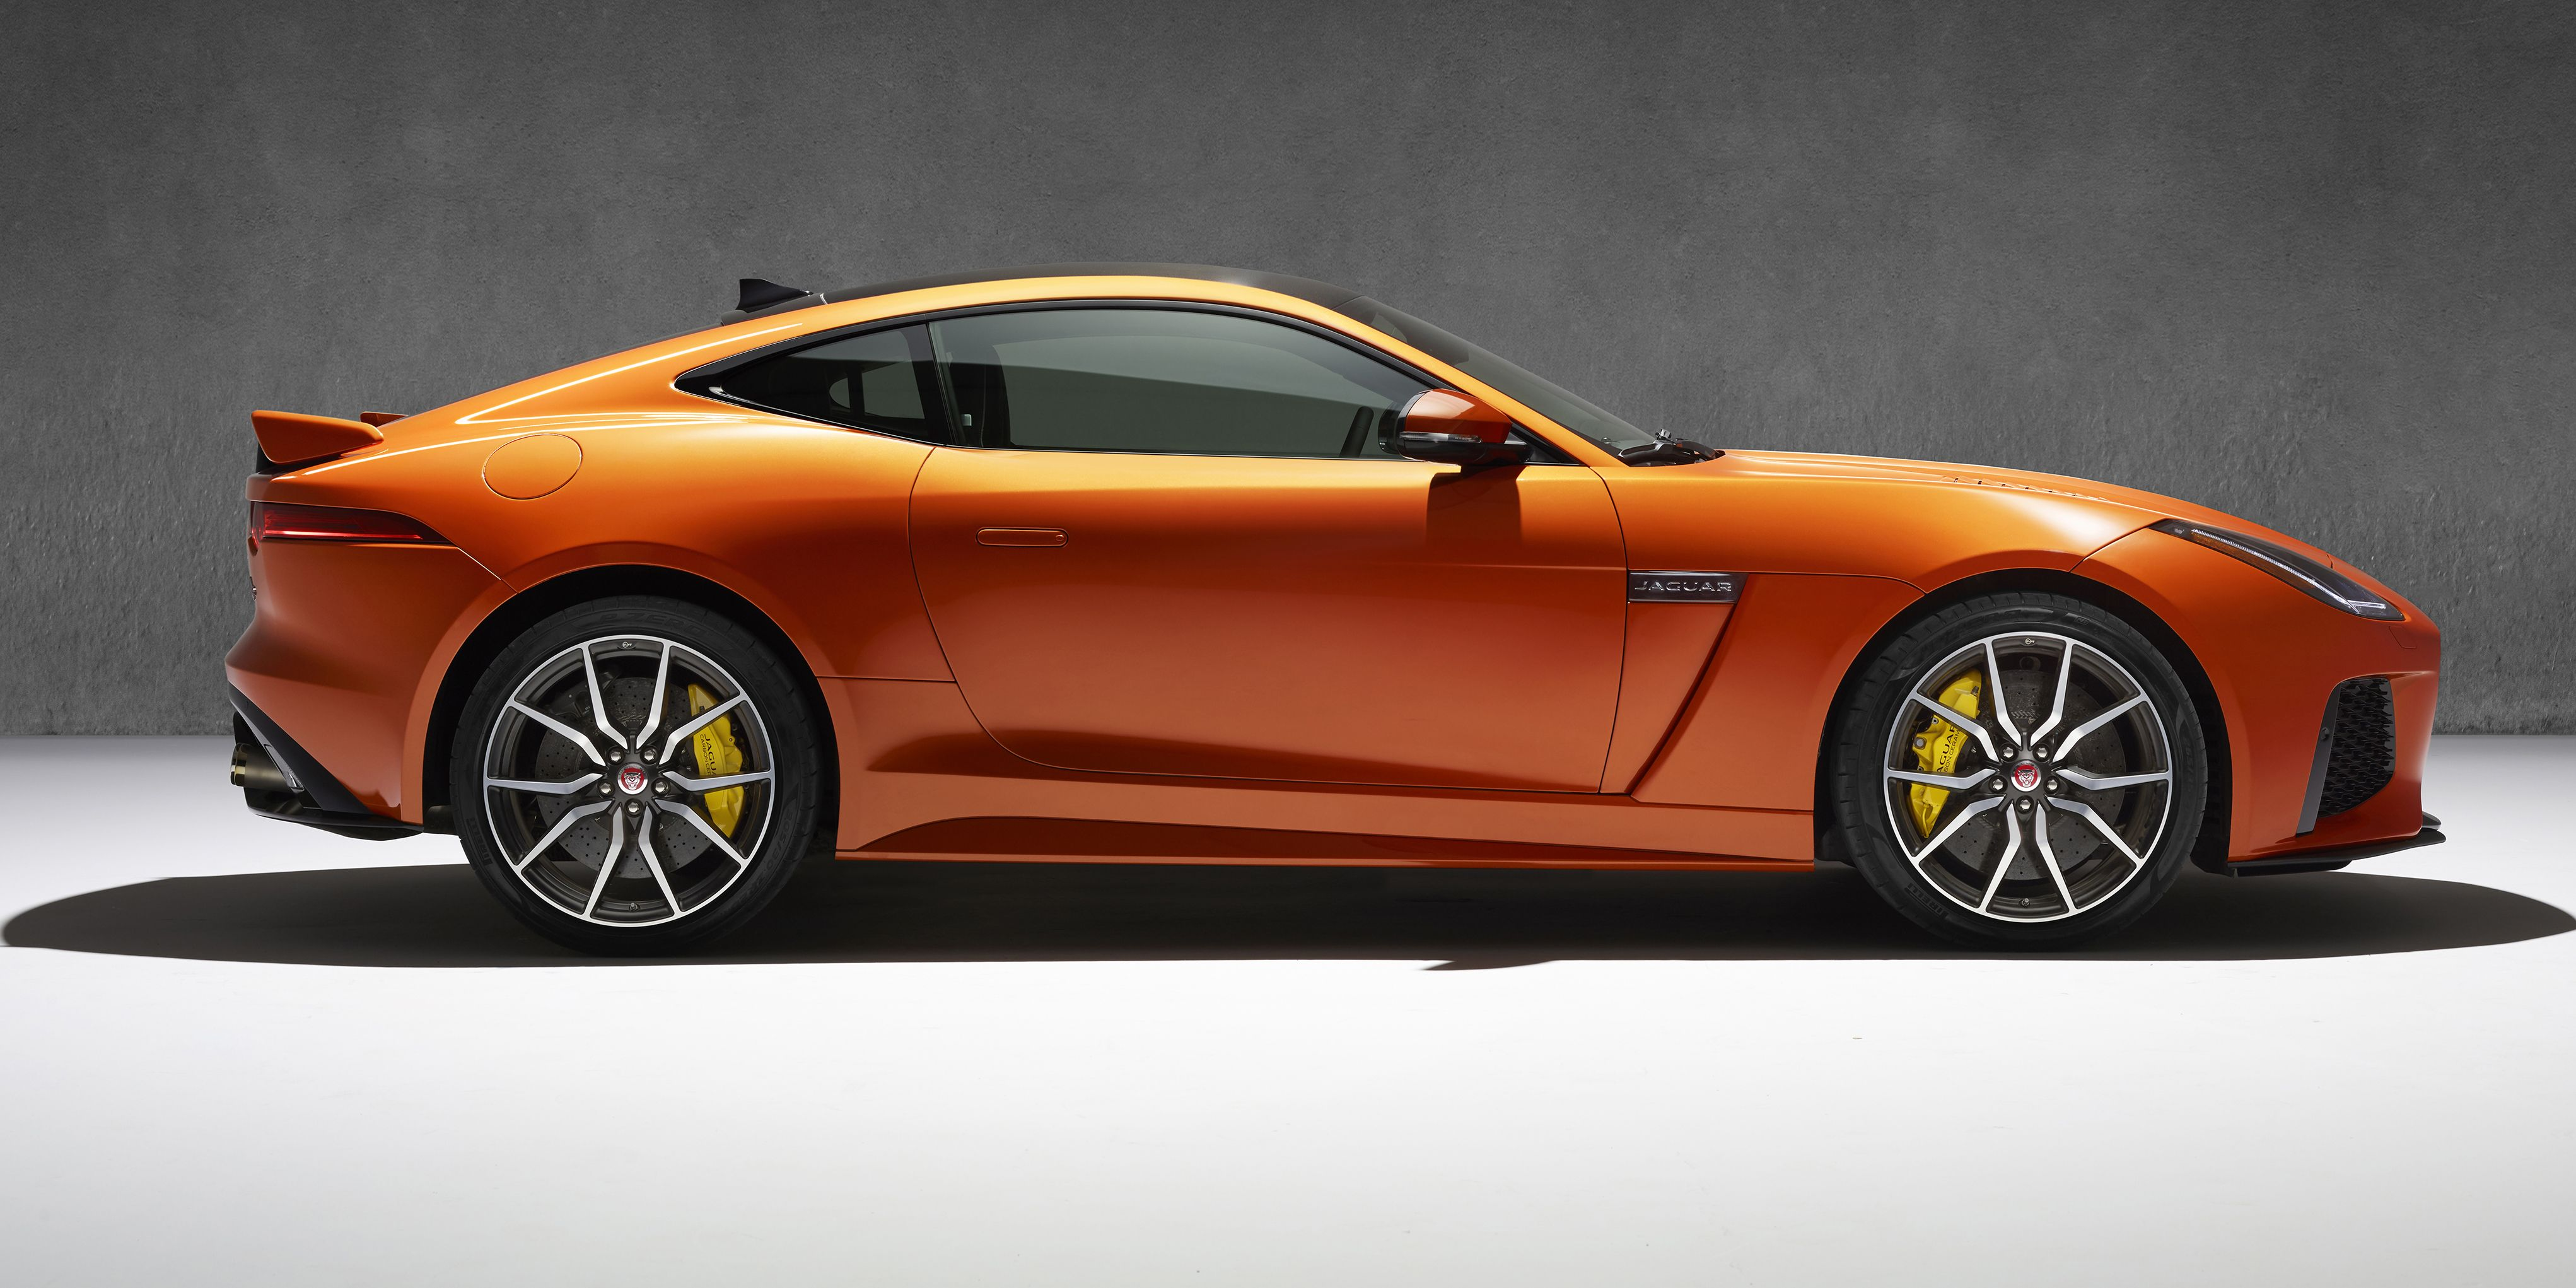 jaguar f-type svr: this is officially the fastest production jaguar ever